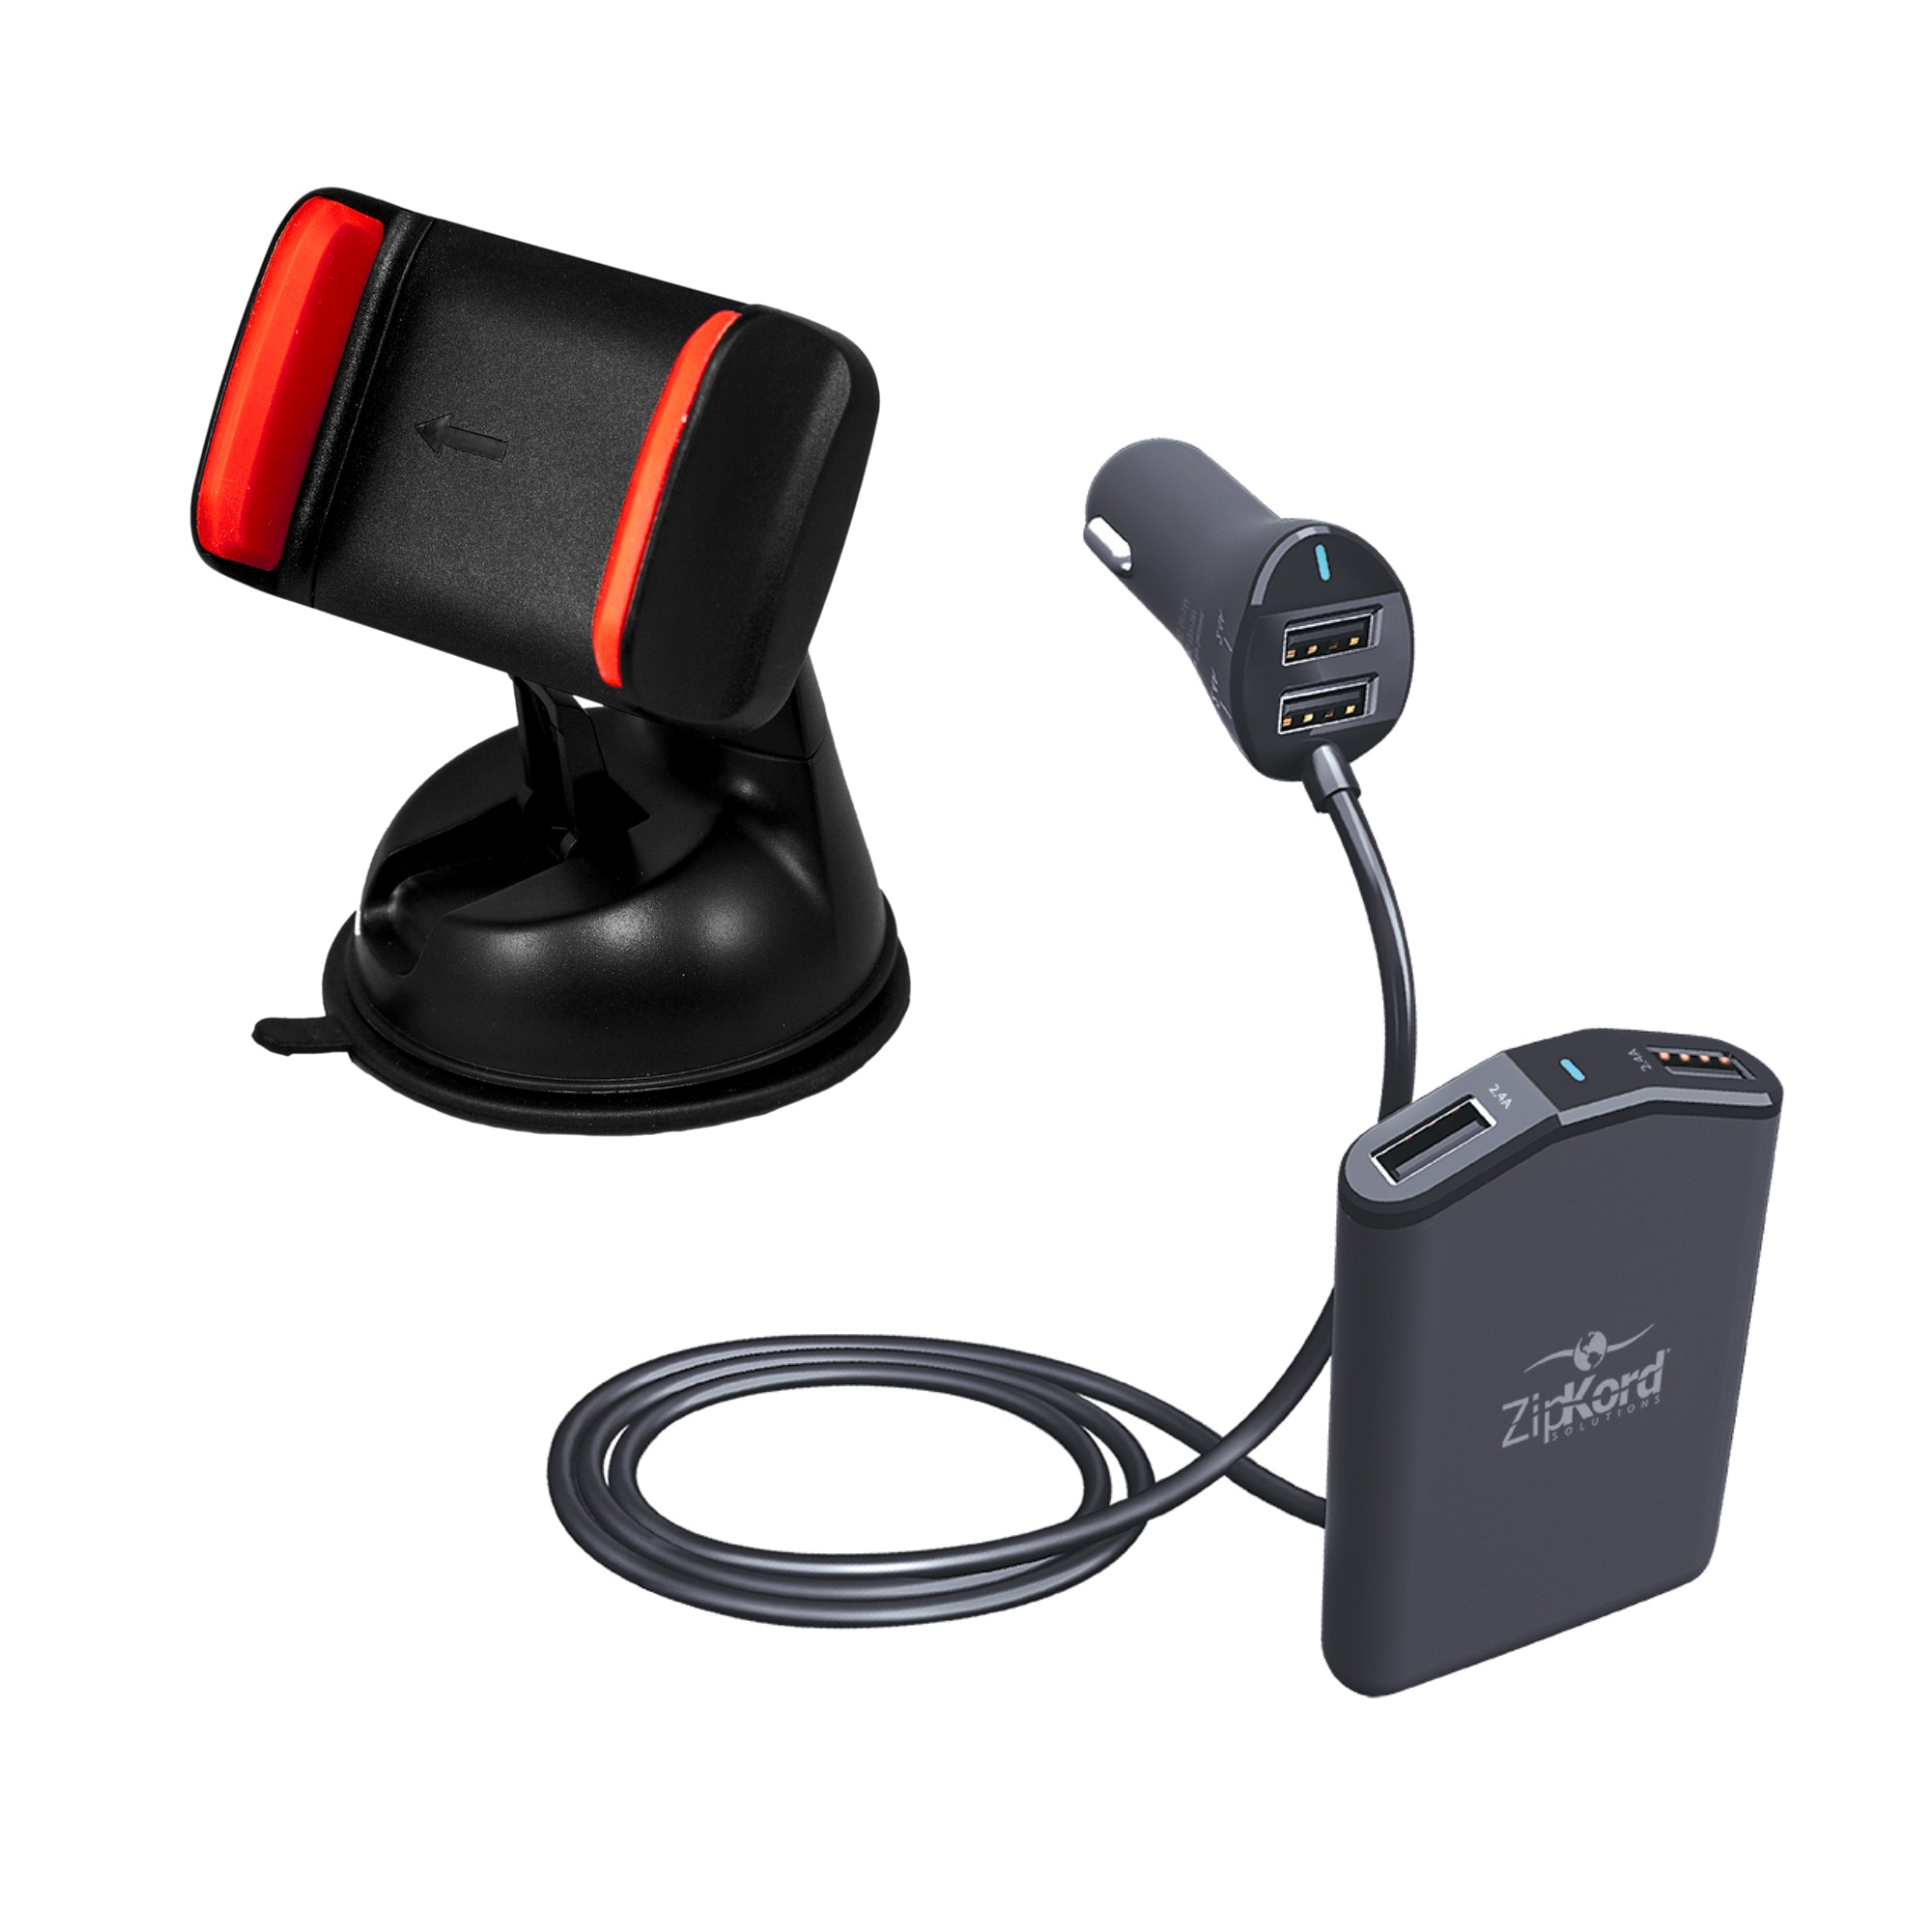 Zipkord 4 USB Port Dual Zone Charger with Universal Vent Mount